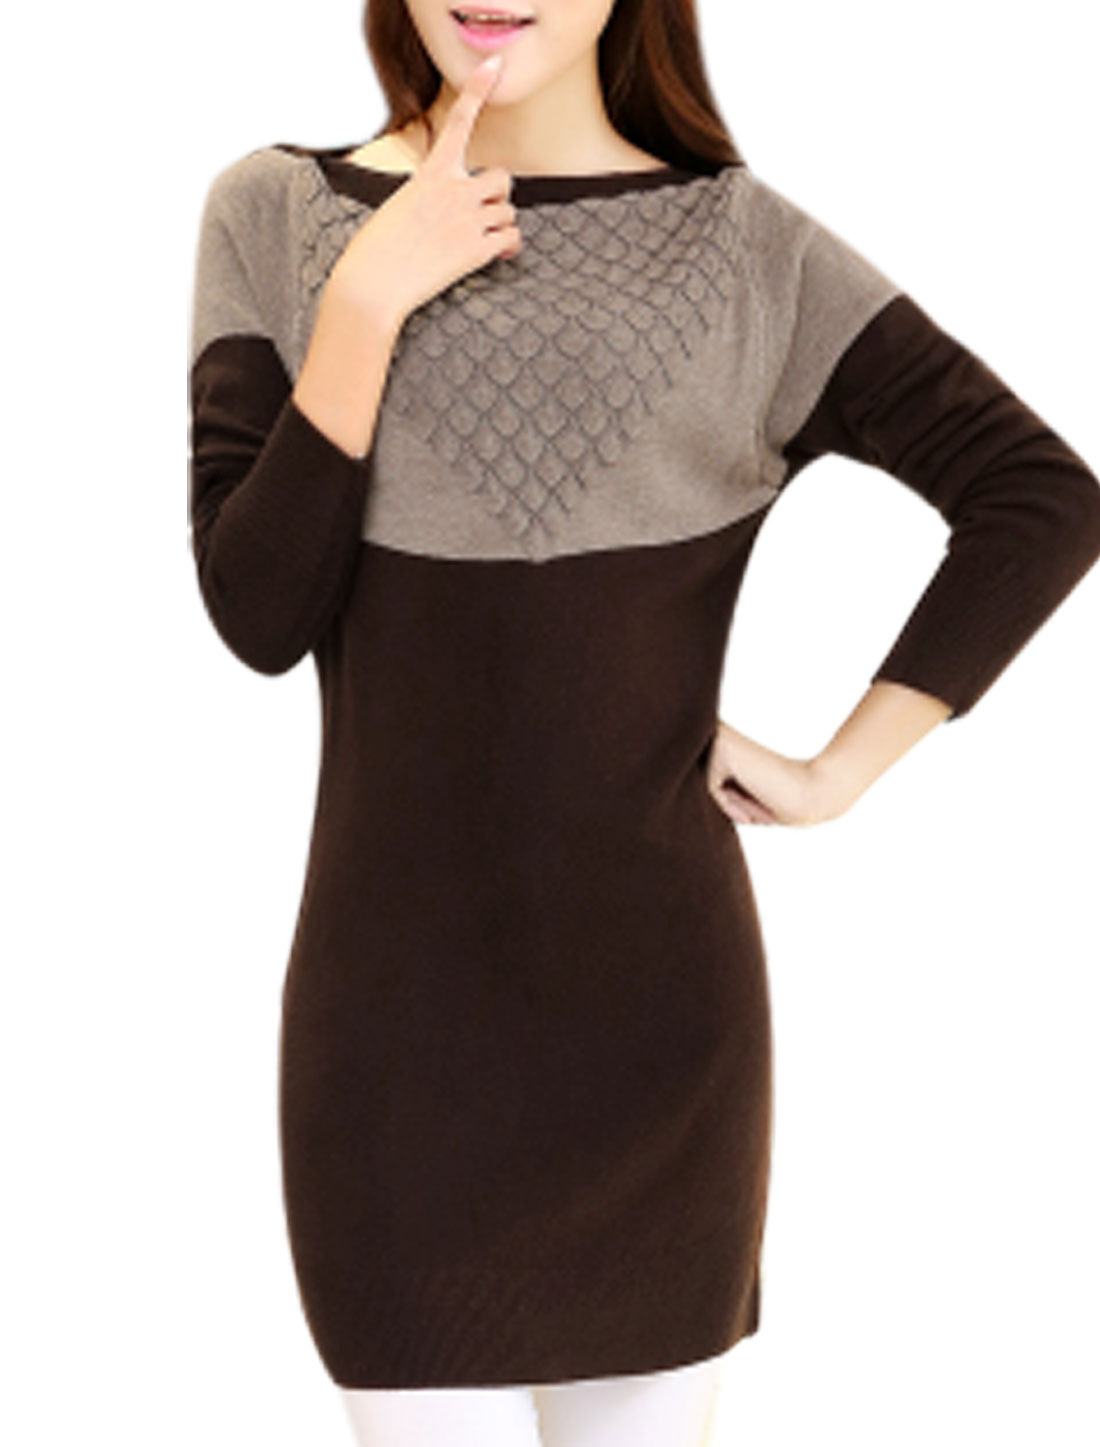 Lady Contrast Color Boat Neck Stretchy Casual Knit Top Dark Brown Taupe S